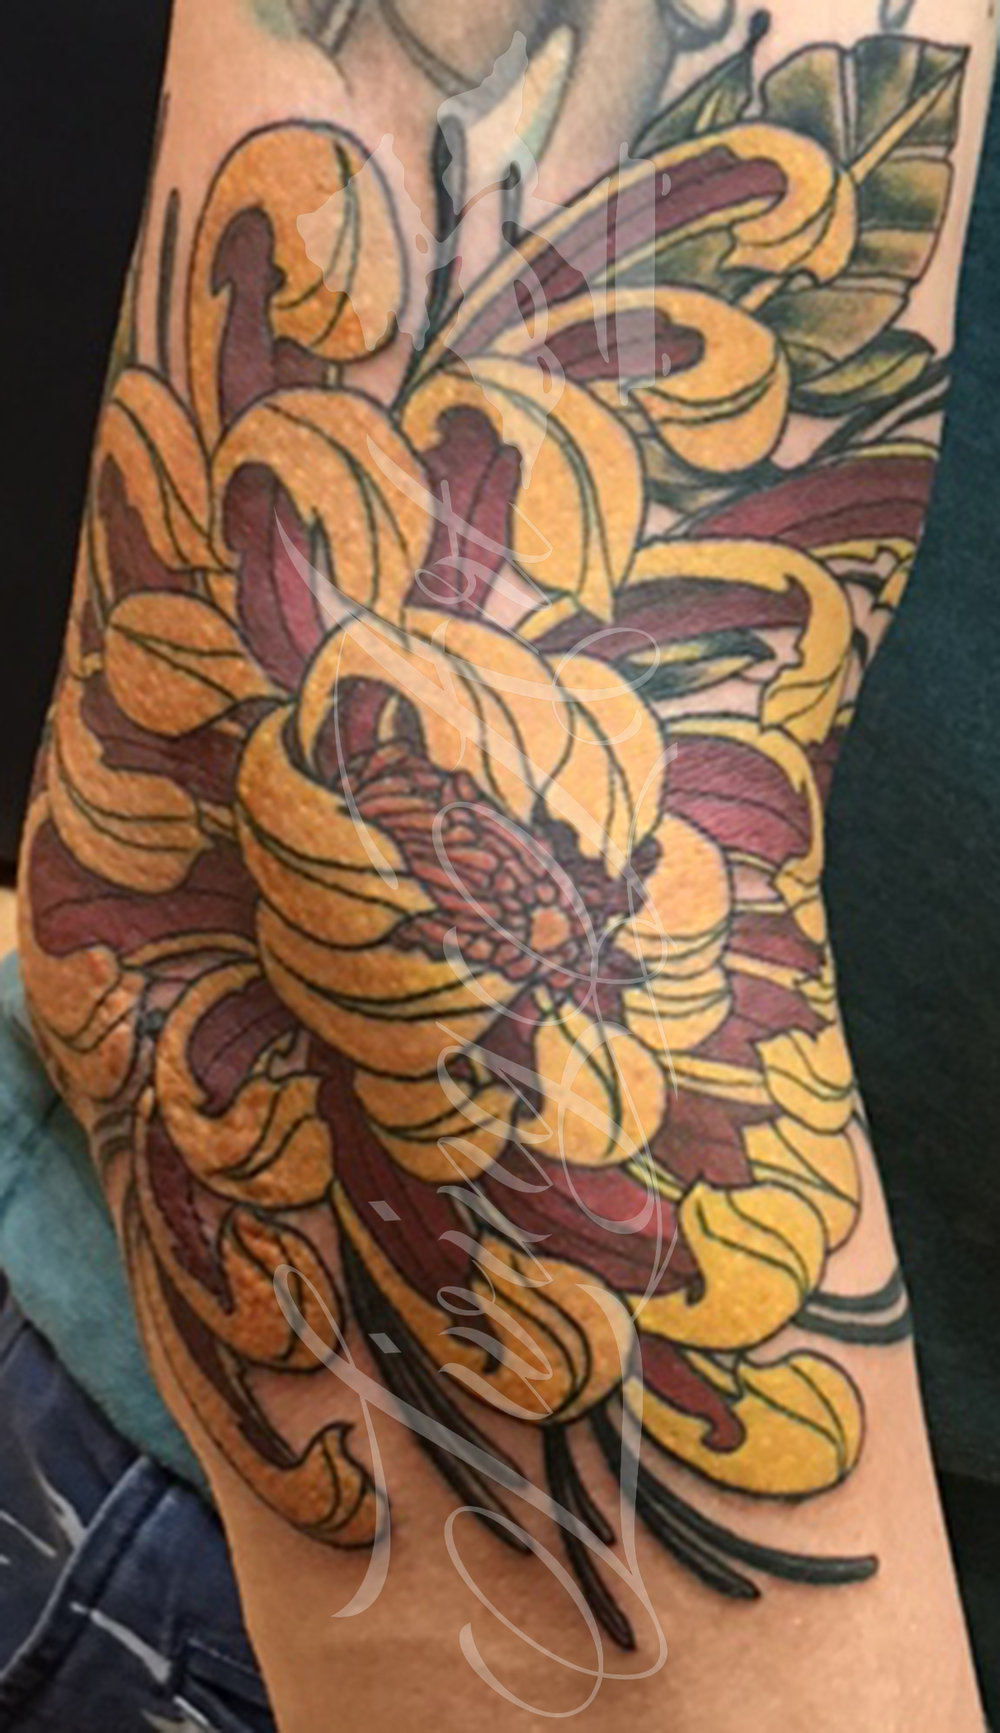 chris owen tattoo_chrysanthemum tattoo_japanese tattoo.jpg